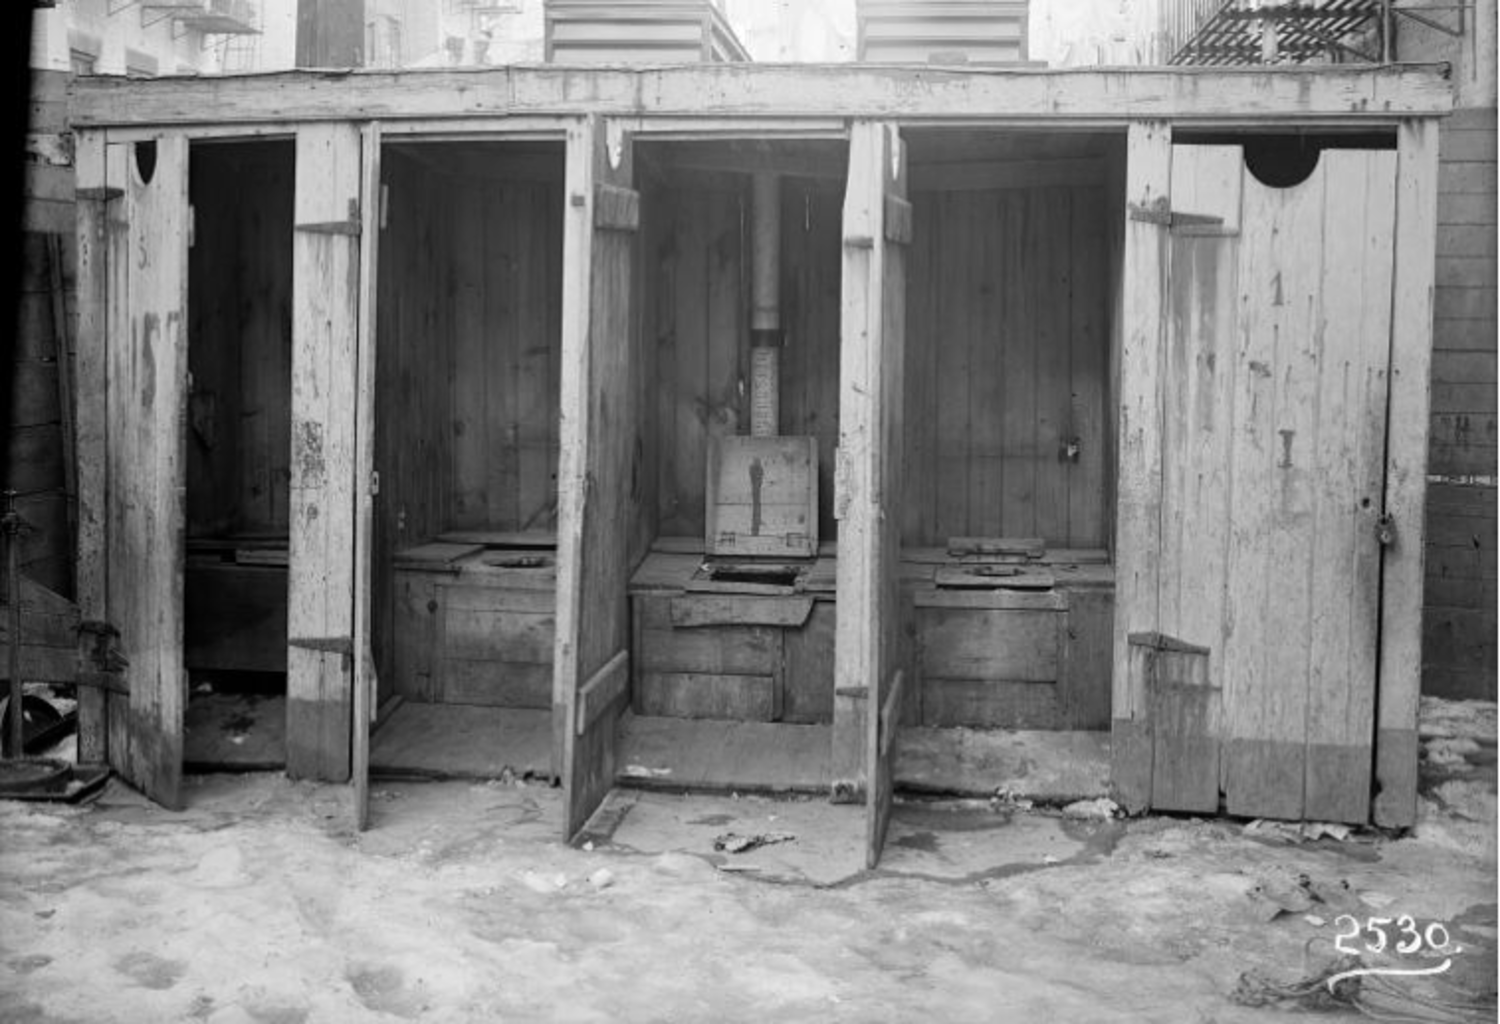 """Irma and Paul Milstein Division of United States History, Local History and Genealogy, The New York Public Library. """"Row of outhouses"""" The New York Public Library Digital Collections. 1902 – 1914."""